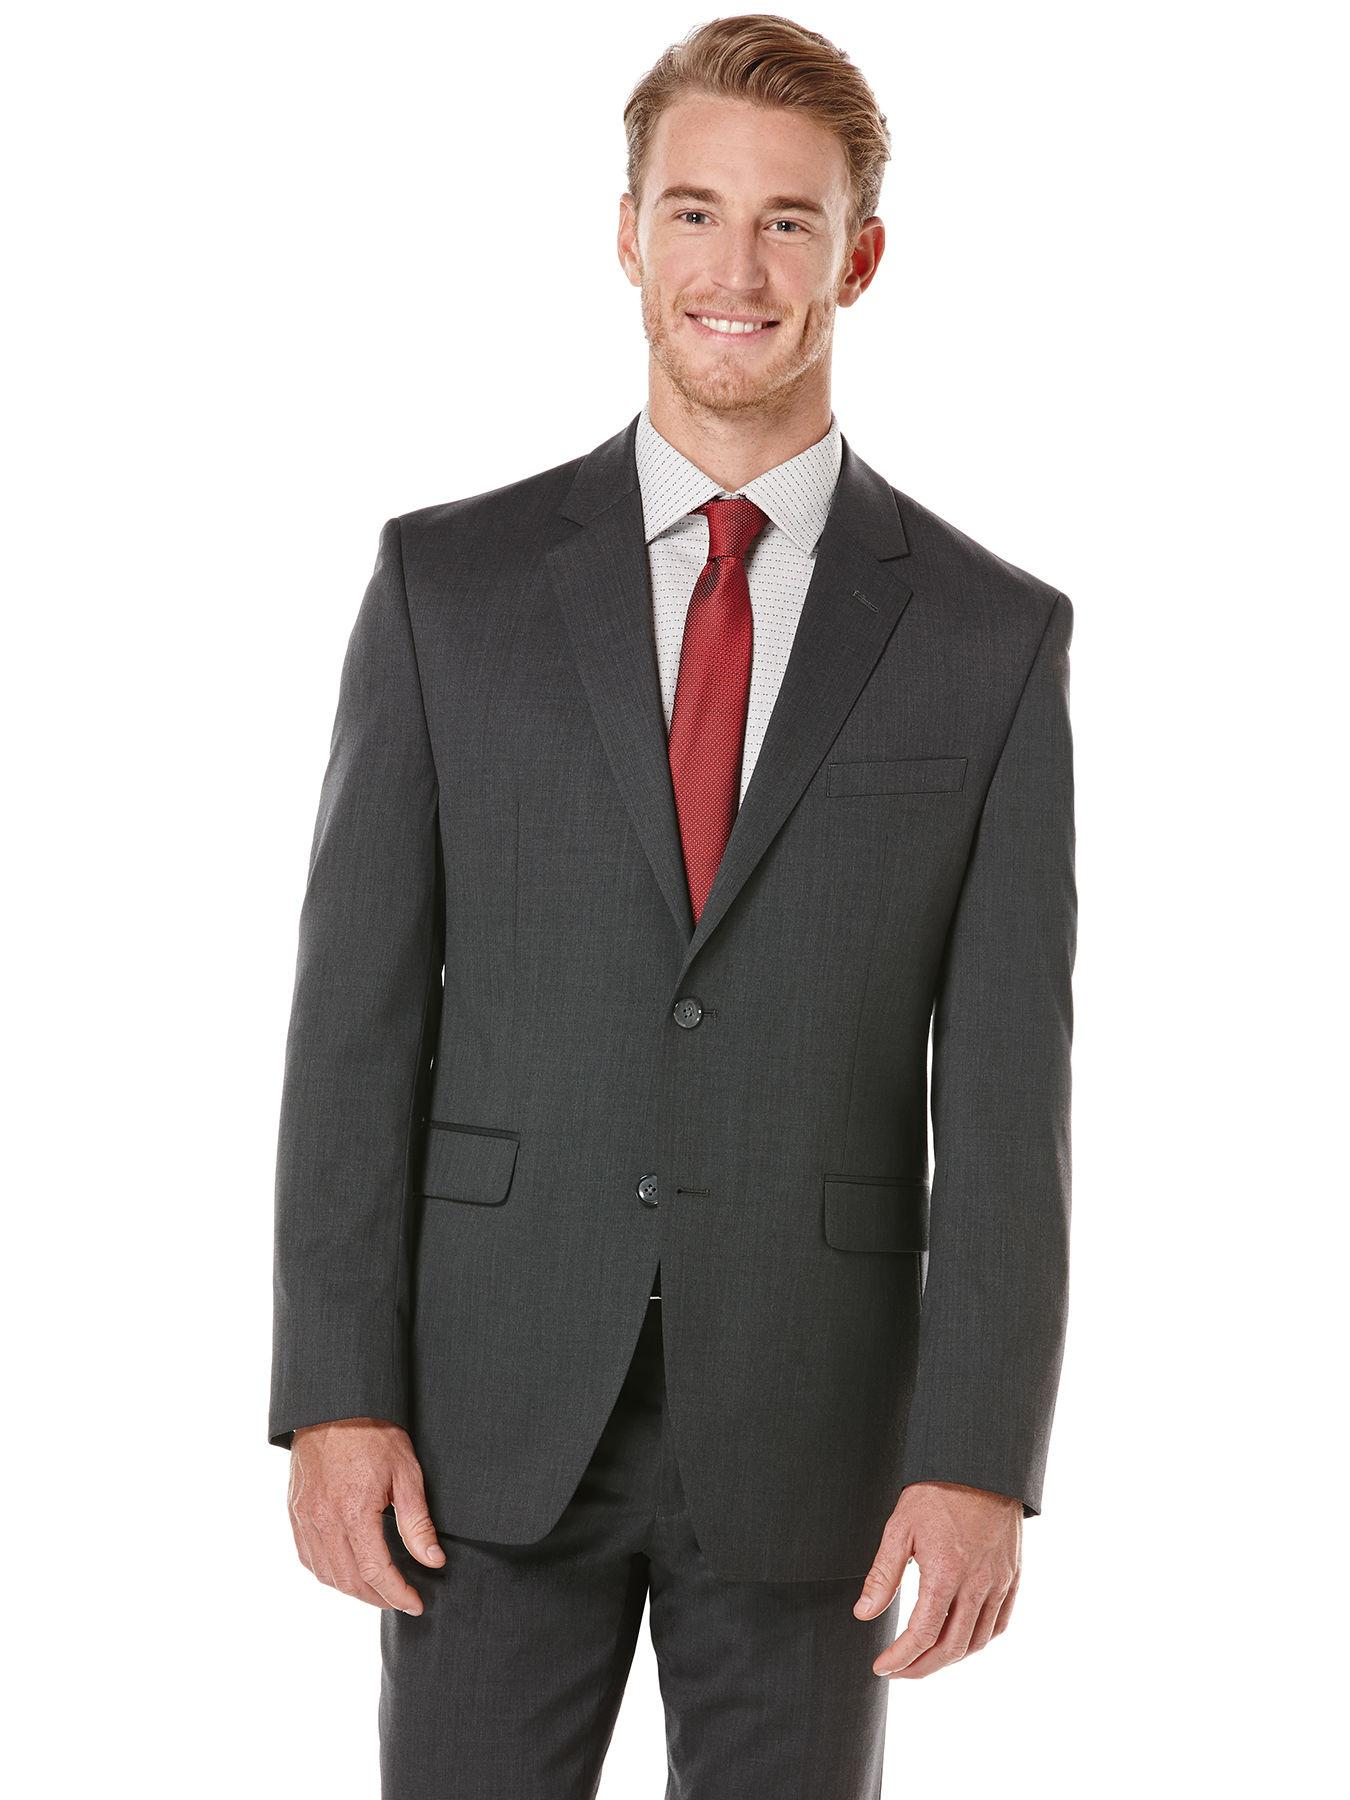 bec0f9d25b Lyst - Perry Ellis Charcoal Solid Suit Jacket in Black for Men